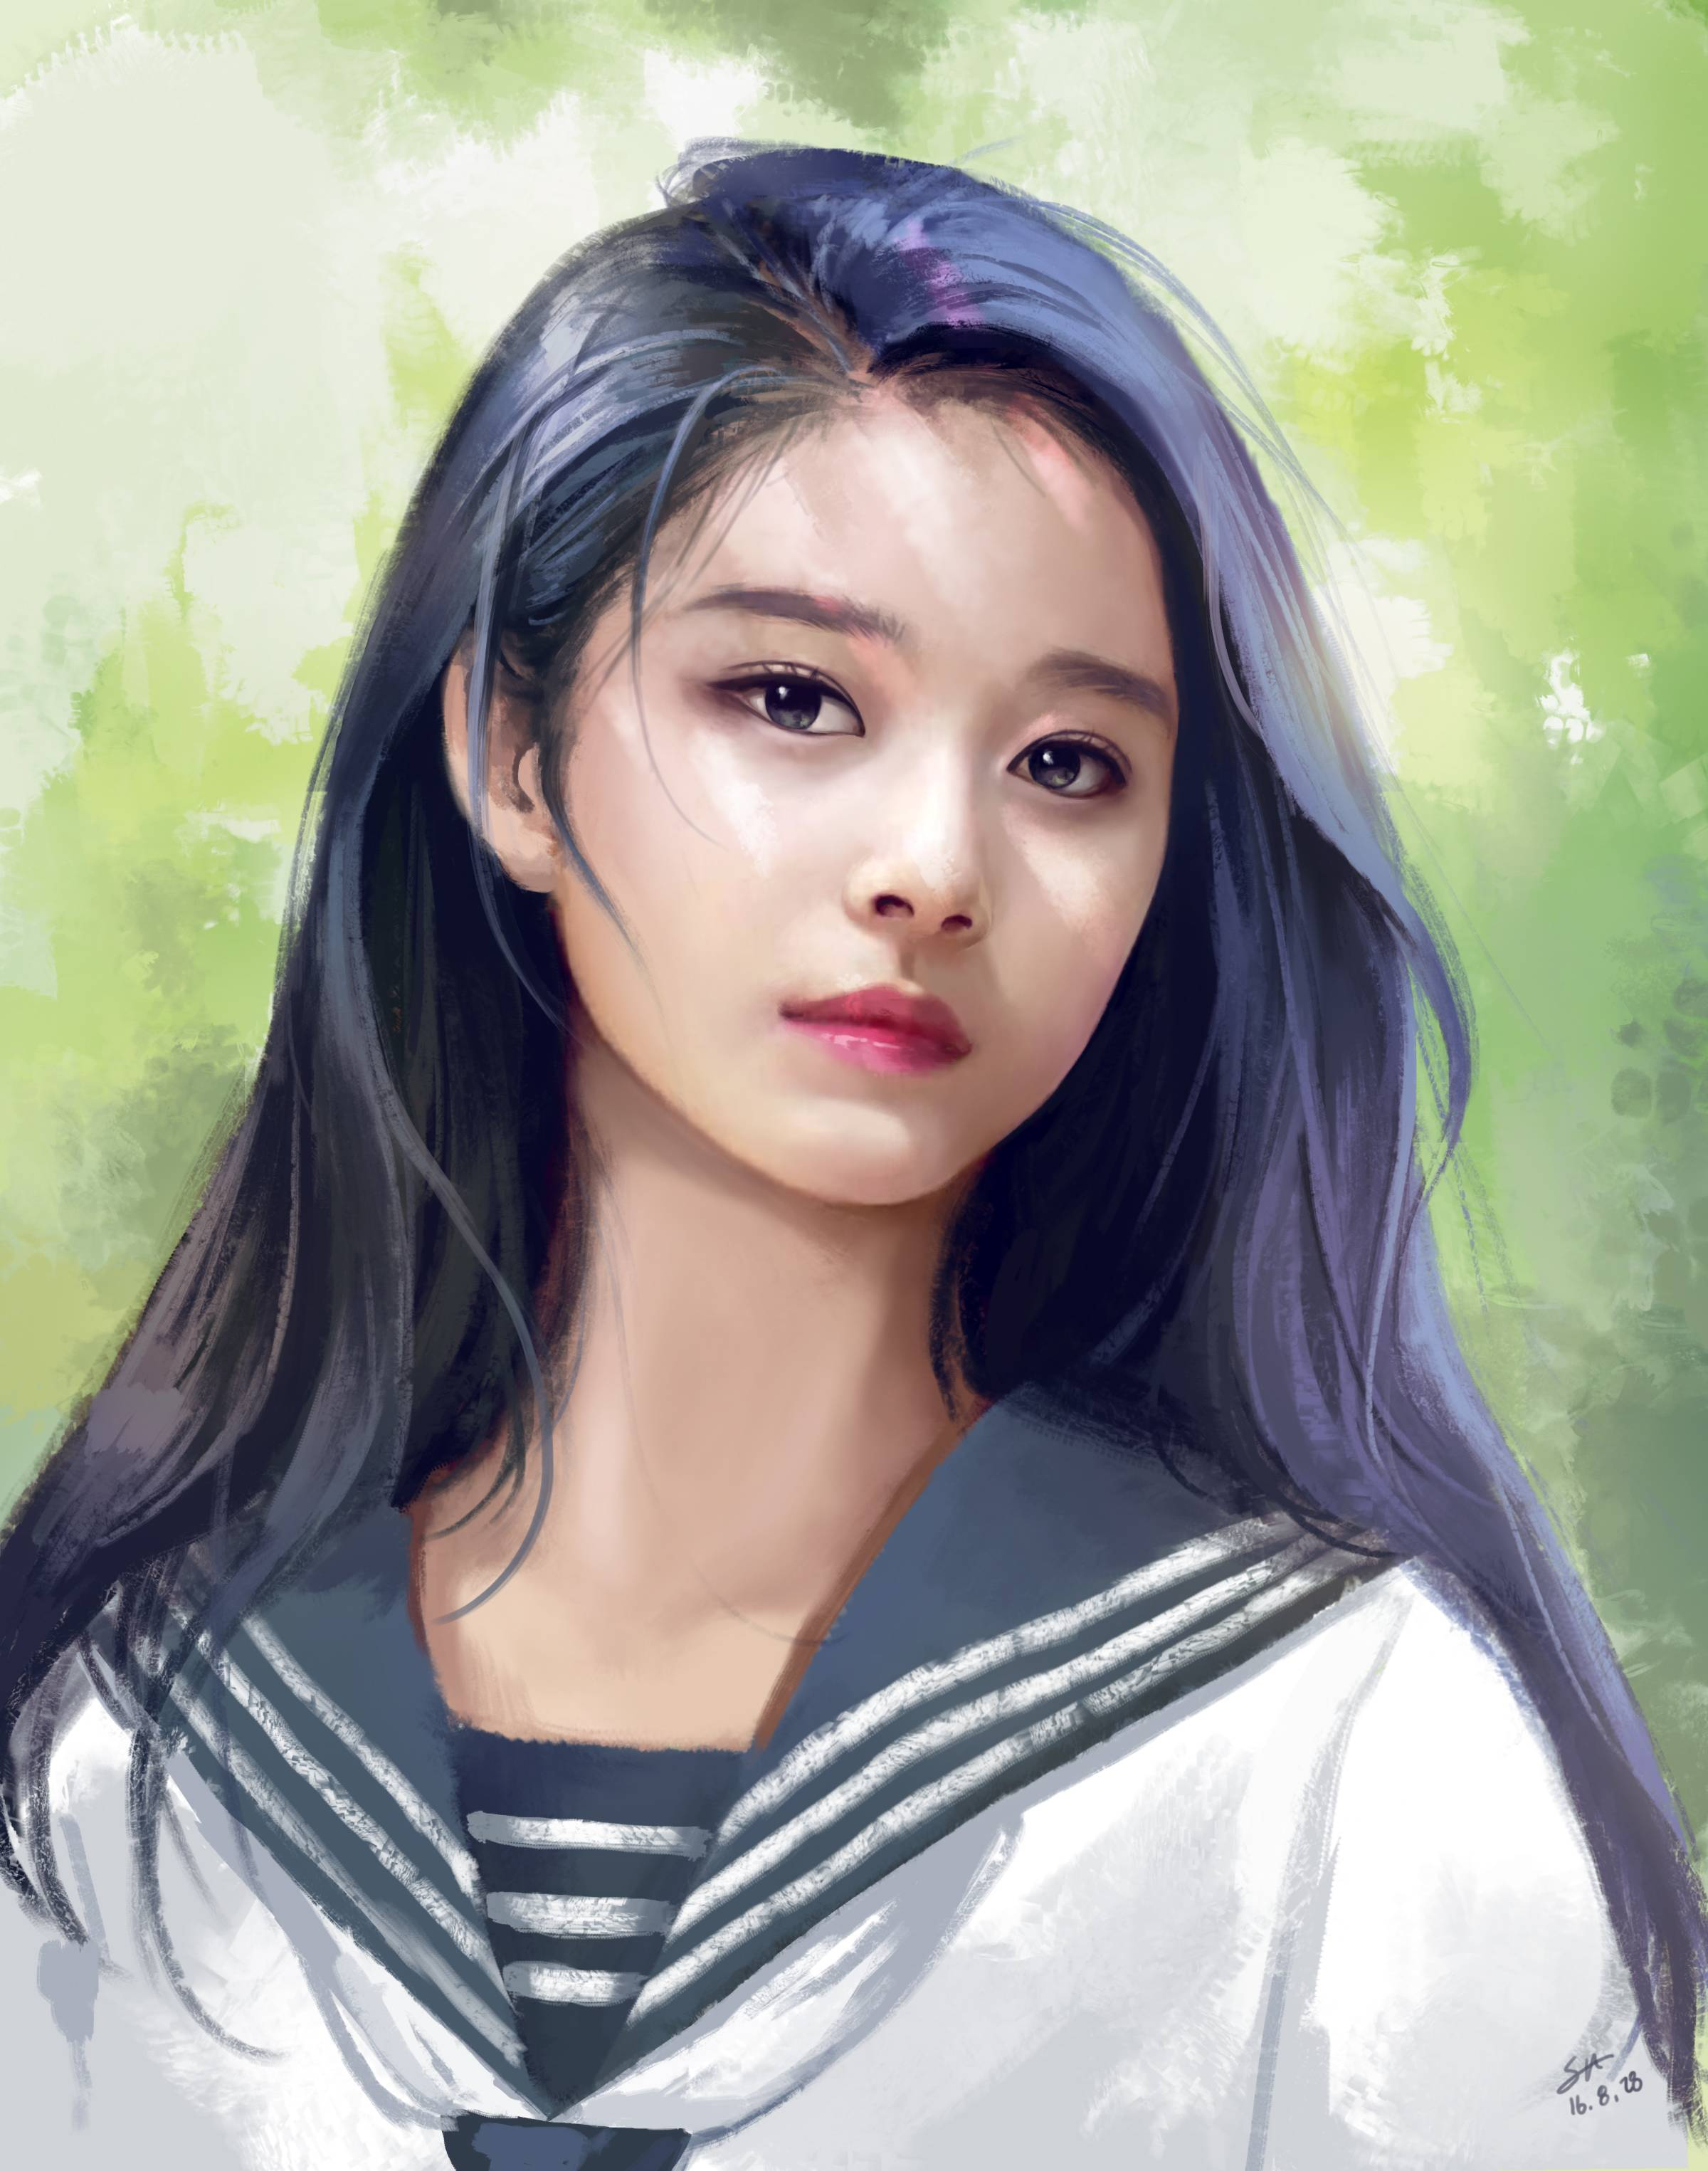 Twice S Tzuyu Is The Perfect Muse For Talented Artists